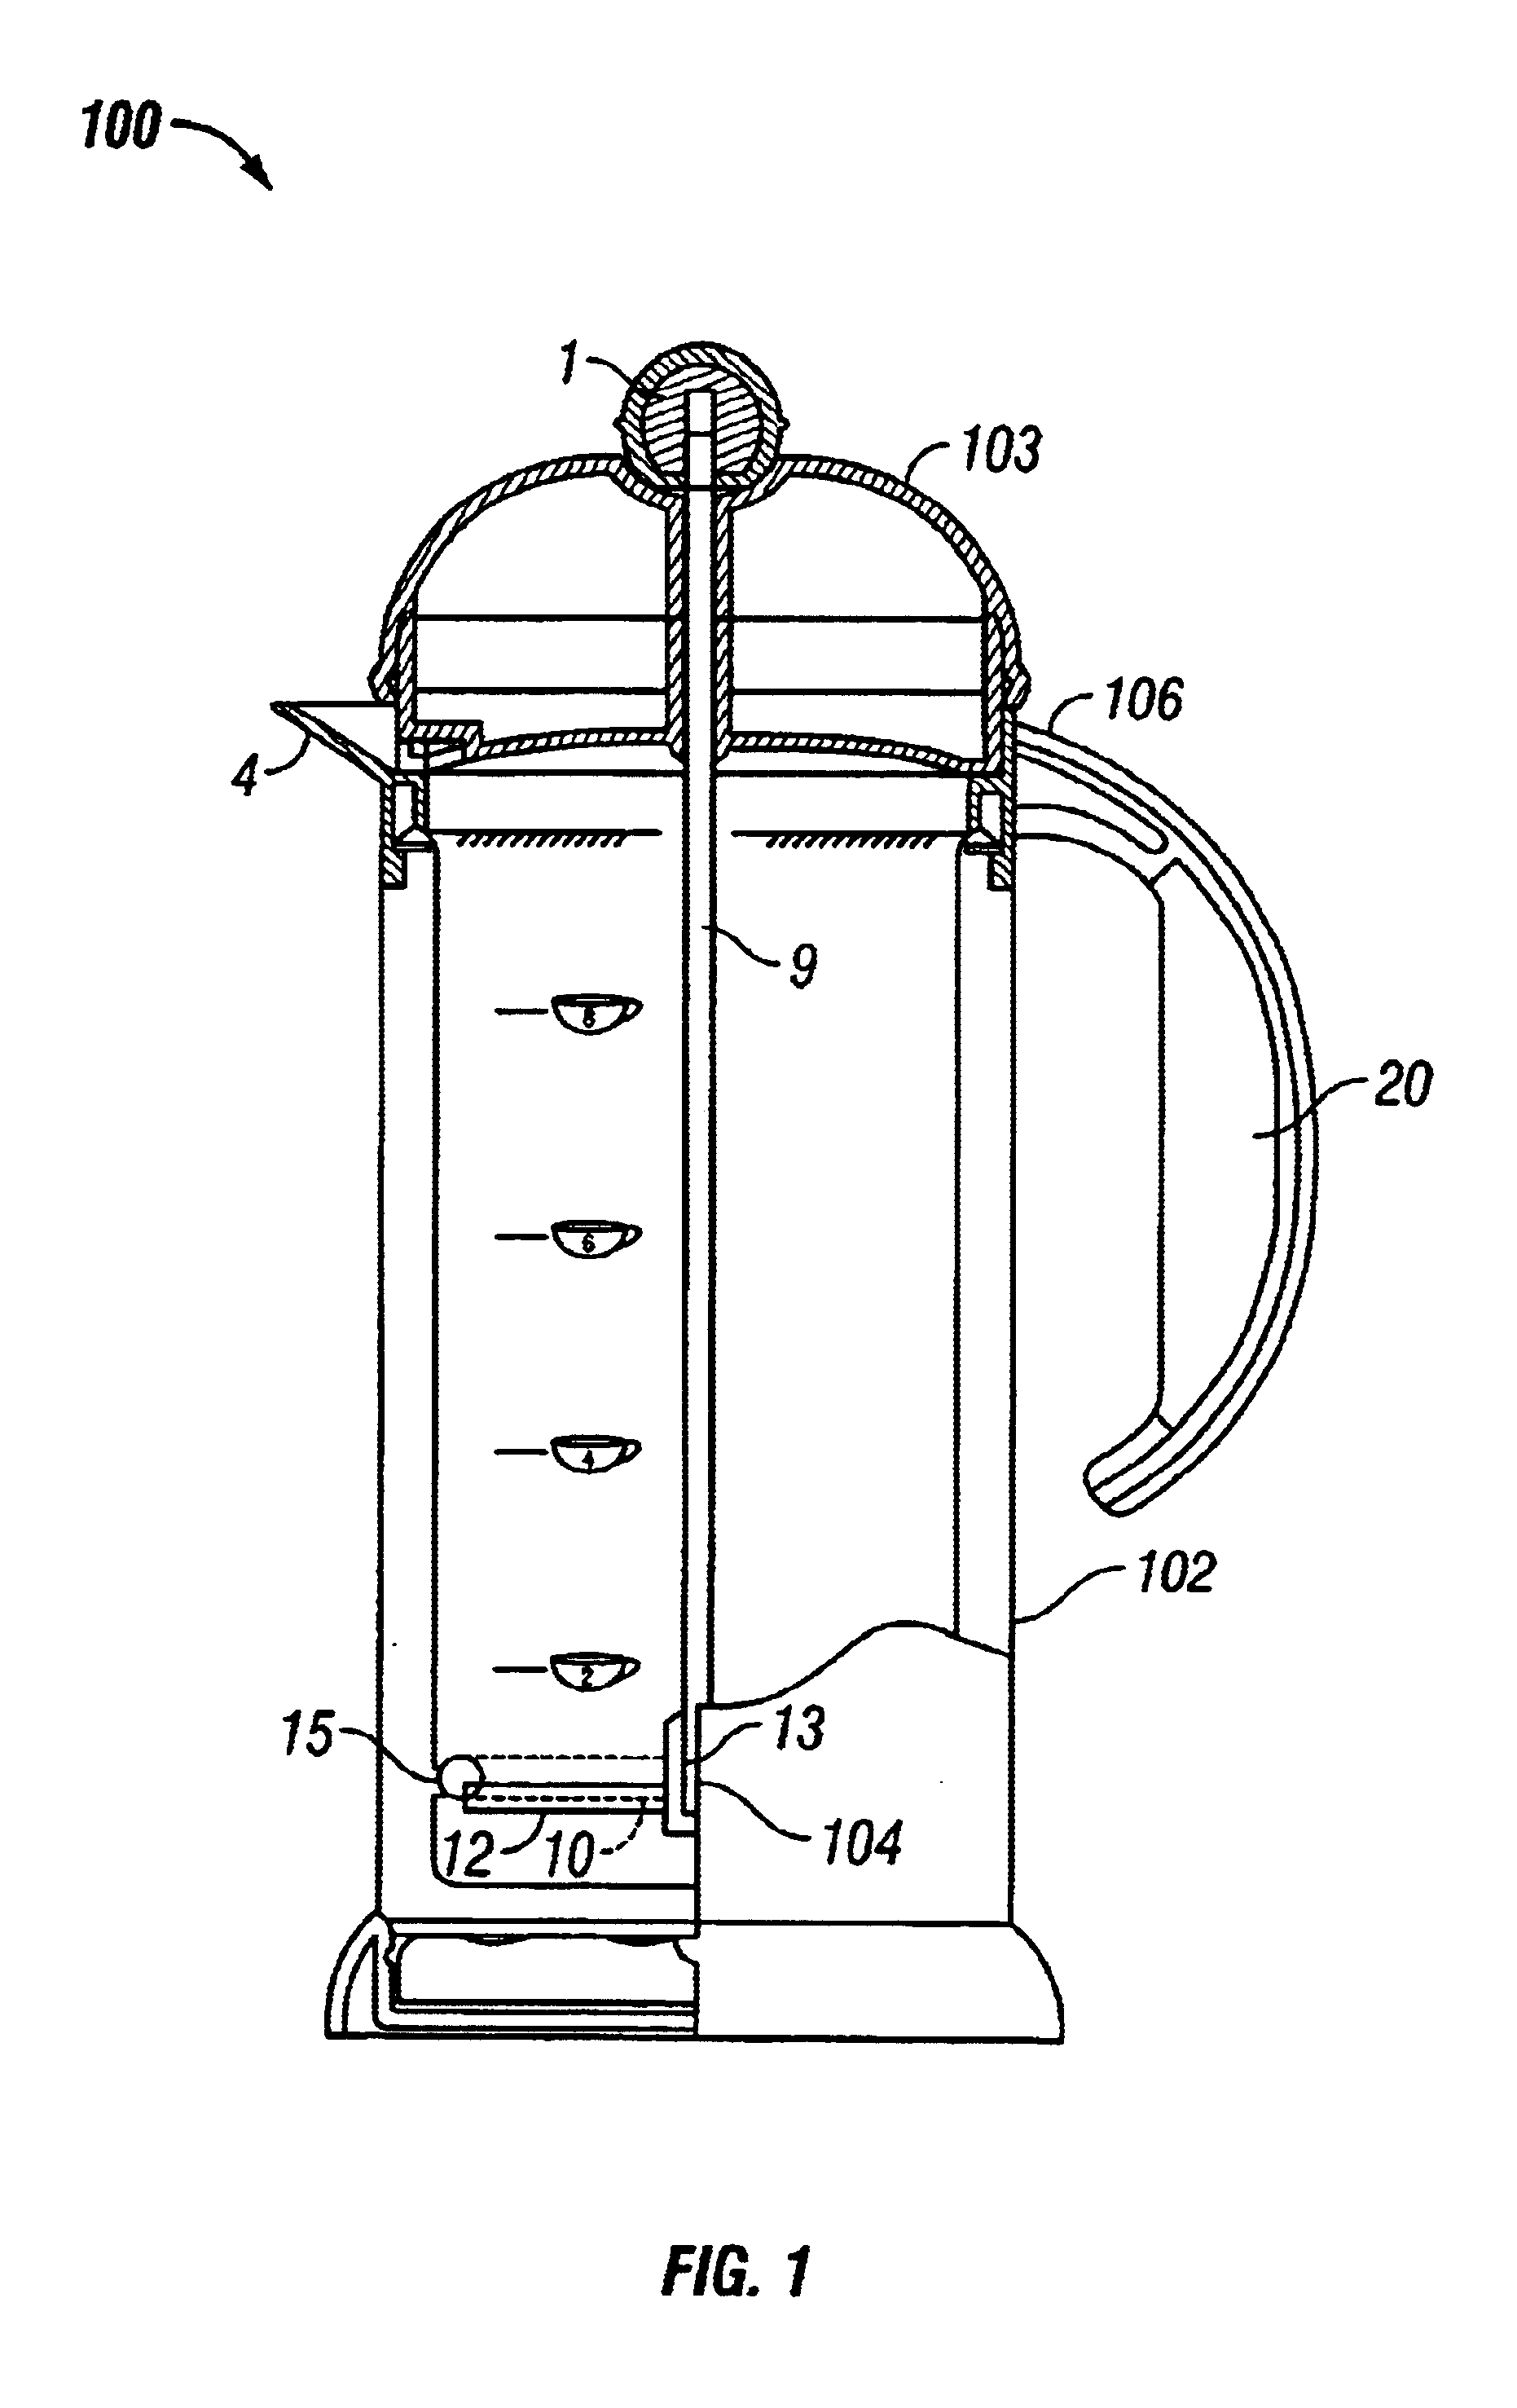 French Press Coffee Maker Assembly : Patent US6797304 - French press coffee maker with assembly to selectively reduce contact of ...